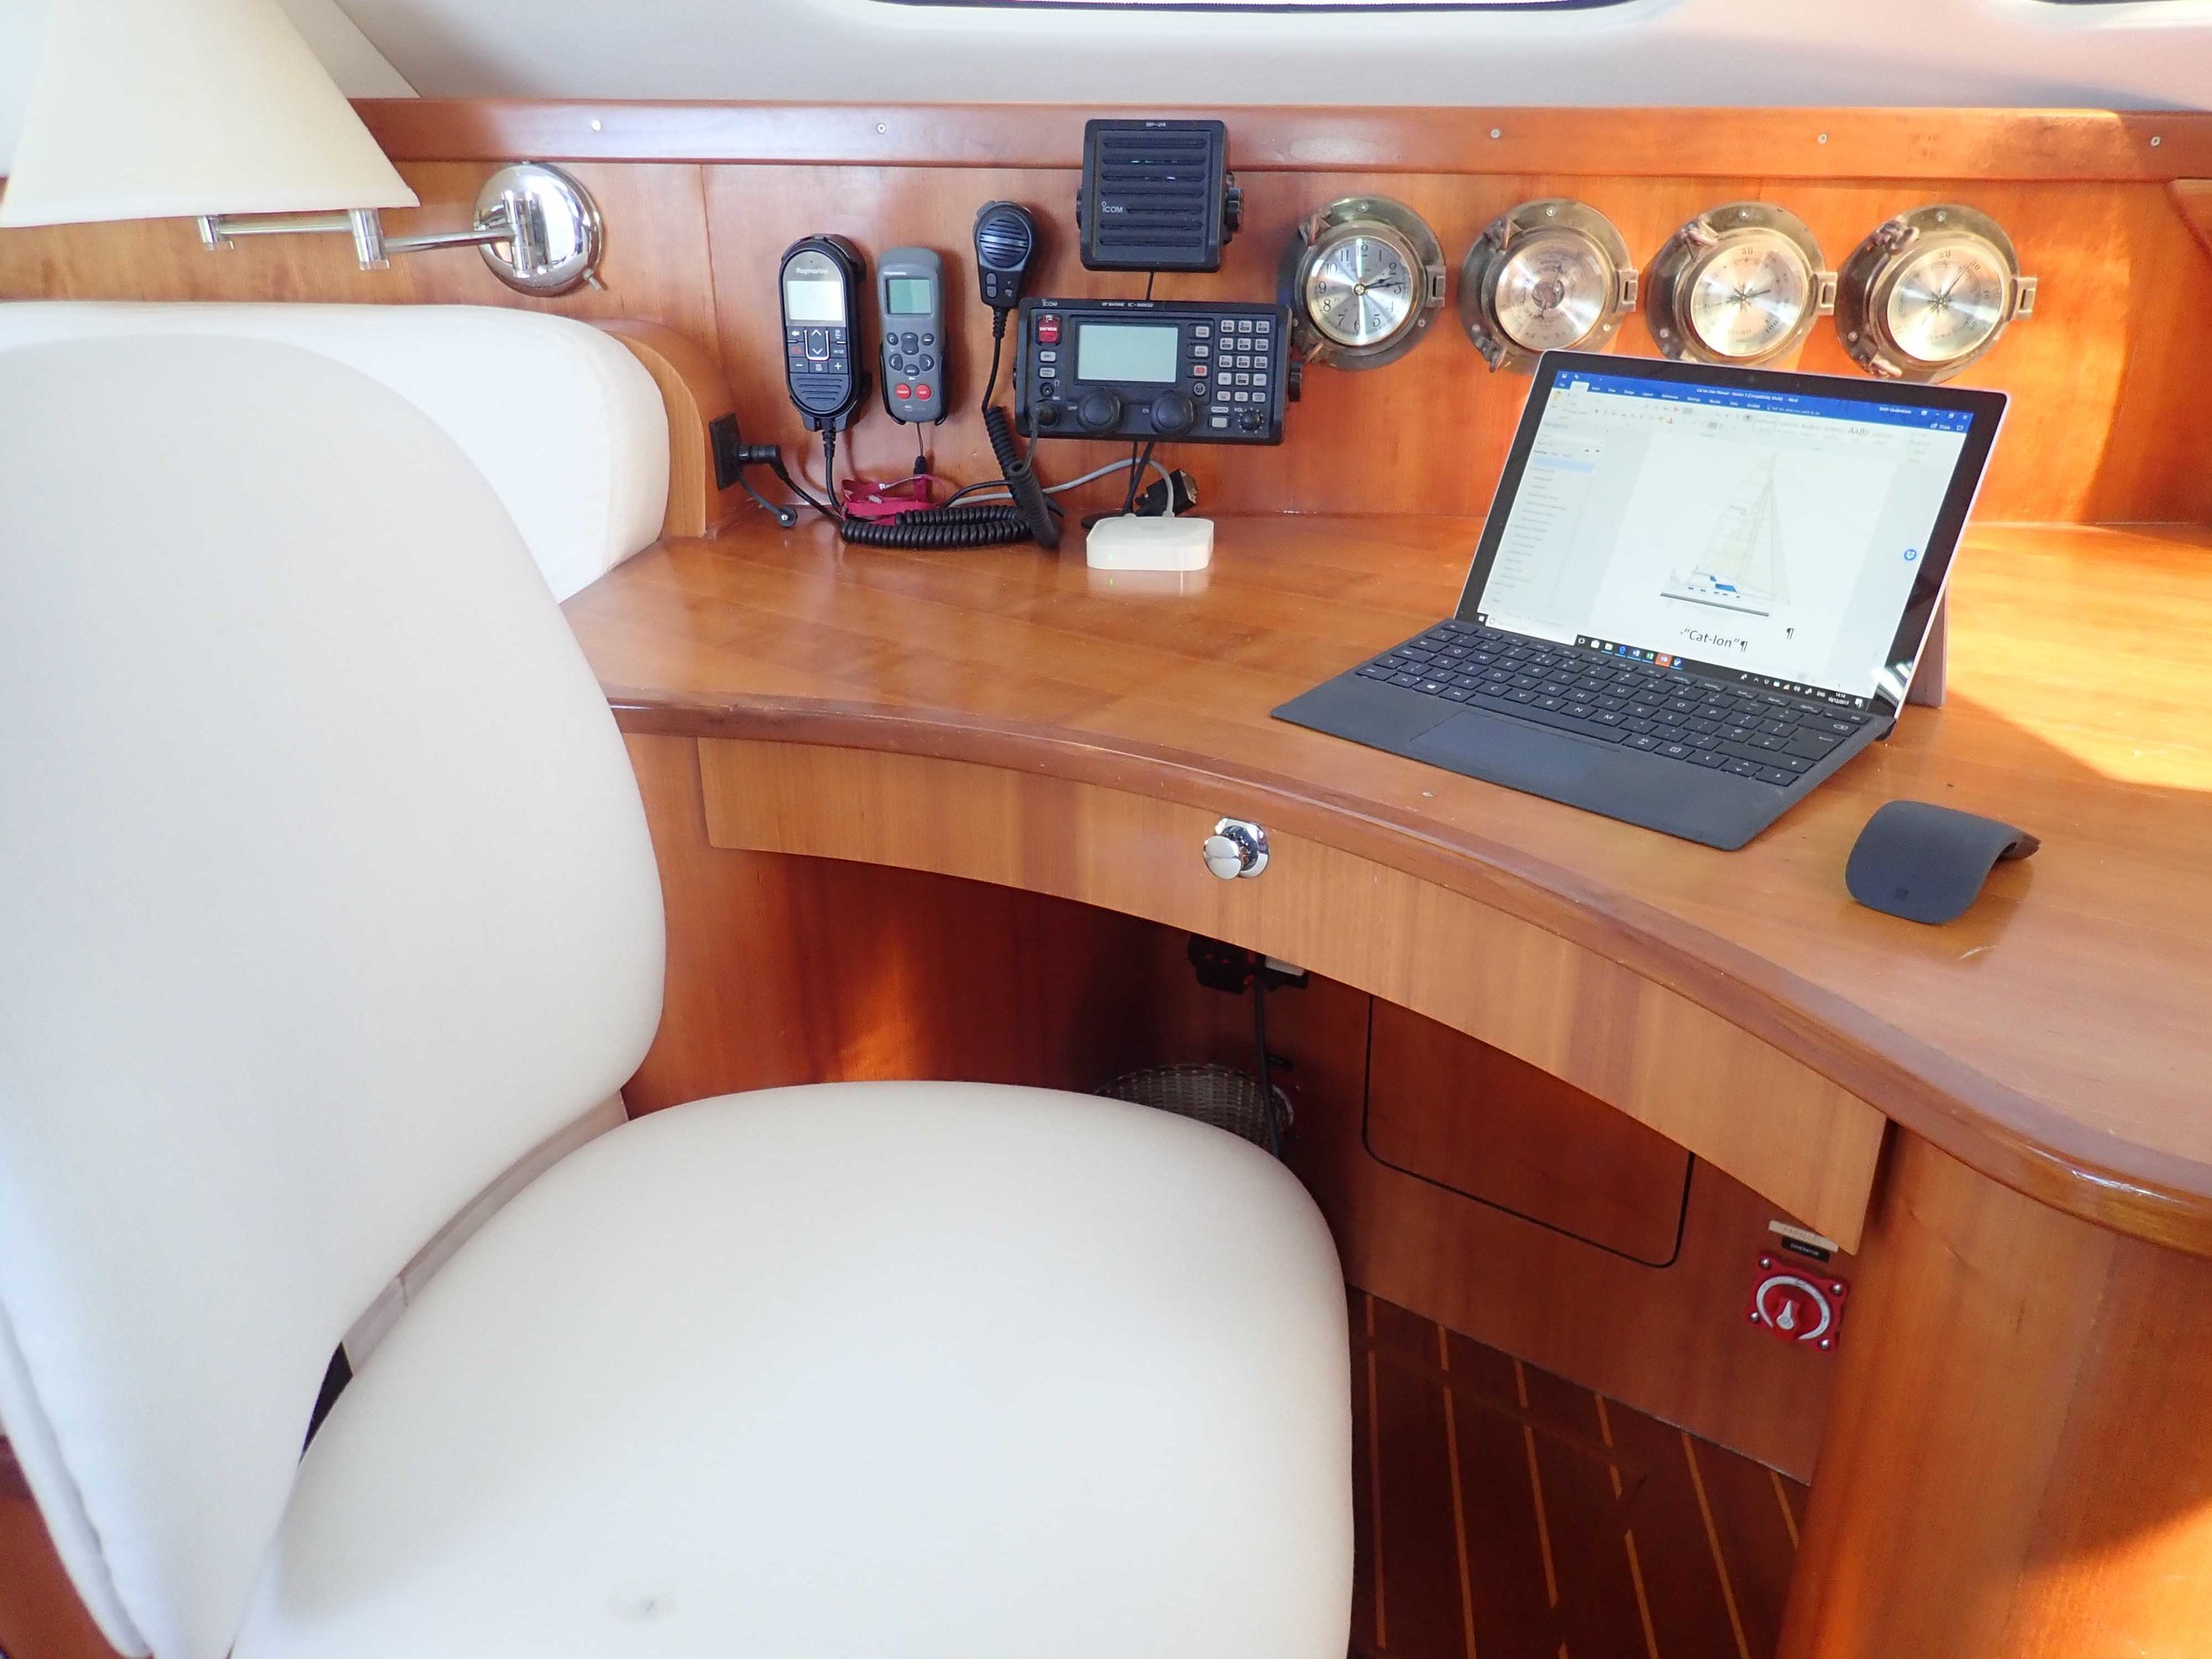 Additionally - Raymarine VHF DSC, autohelm, digital radar, AIS, instruments, Sirius weather, LifeTag man overboard, E127 hybrid touchscreen MFD, C95 MFD, Smart Pilot, RCU-3 remote and iPAD/iPhone network screen Apps.ICOMM M802 MF/HF long range communicationLewmar powered helm control & Whitlock Mamba shaft and gearbox systemQuick 1400 electric windlass, Harken powered winchesSelden mast with track and roller batt cars, Furlex 400S jib & Harken screecher furler.Sail set includes: - fully battened Main with antal clew, roller furling Genoa, roller furling Screecher, self tacking Jib, assymetrical Spinnaker.85–265 VAC 50/60Hz battery chargers allow any shore power to be connected, with inverted 120 VAC 60Hz maintained aboard.FM/AM/Sirius radio (lifetime subscription), Toshiba HDTV, Apple TV, AirPort Express music streaming, Badboy WIFI booster.120VAC outlets, LED lighting, dimmable LED, USB charging outlets throughout. Paneltronics 120VAC and 12VDC breakersLED automatic mast head anchor lights, LED navigation lights, red/white cockpit lights, deck lights, remote control davit lights, blue stern underwater lights.LPG gas hob, LPG oven, microwave combination oven, LPG Magma BBQ, Splendide 1200S washer-drier.Offshore flare packs, life jackets, EPIRB, Life Sling, DAN buoy, throwing lines & buoyancy ring, emergency tiller.